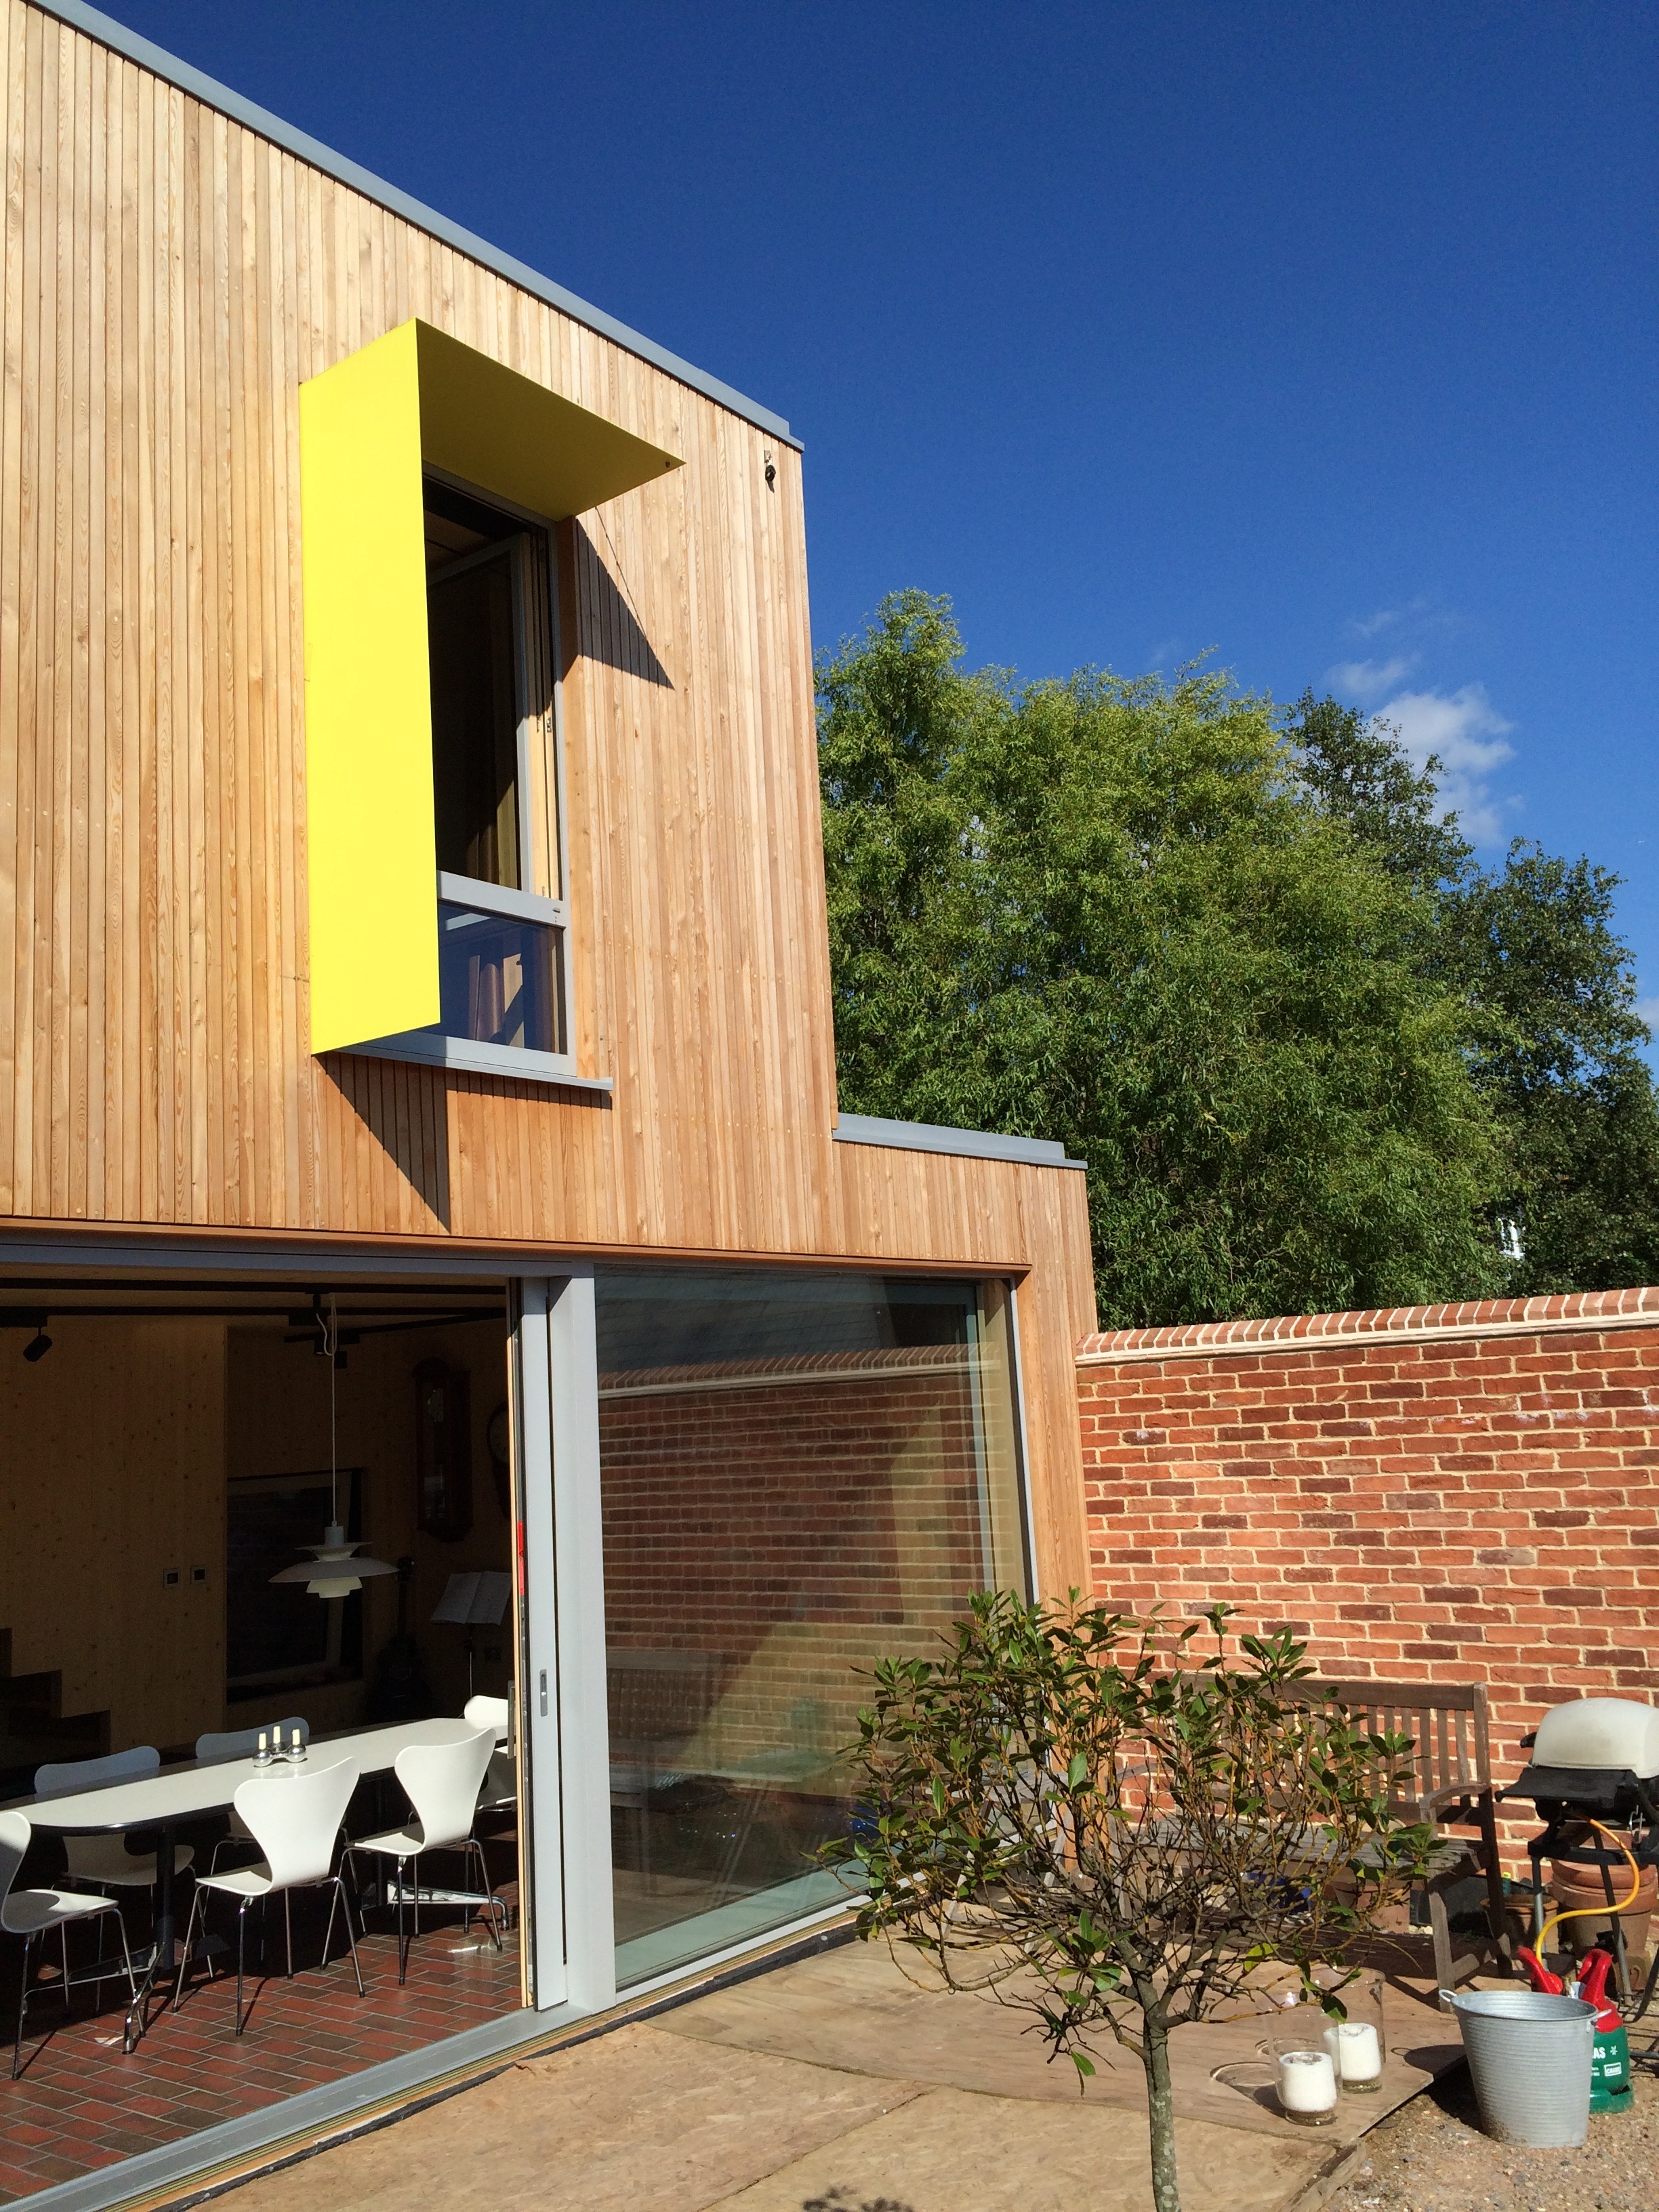 PassivHaus – The Leading Low Energy, Design Standard